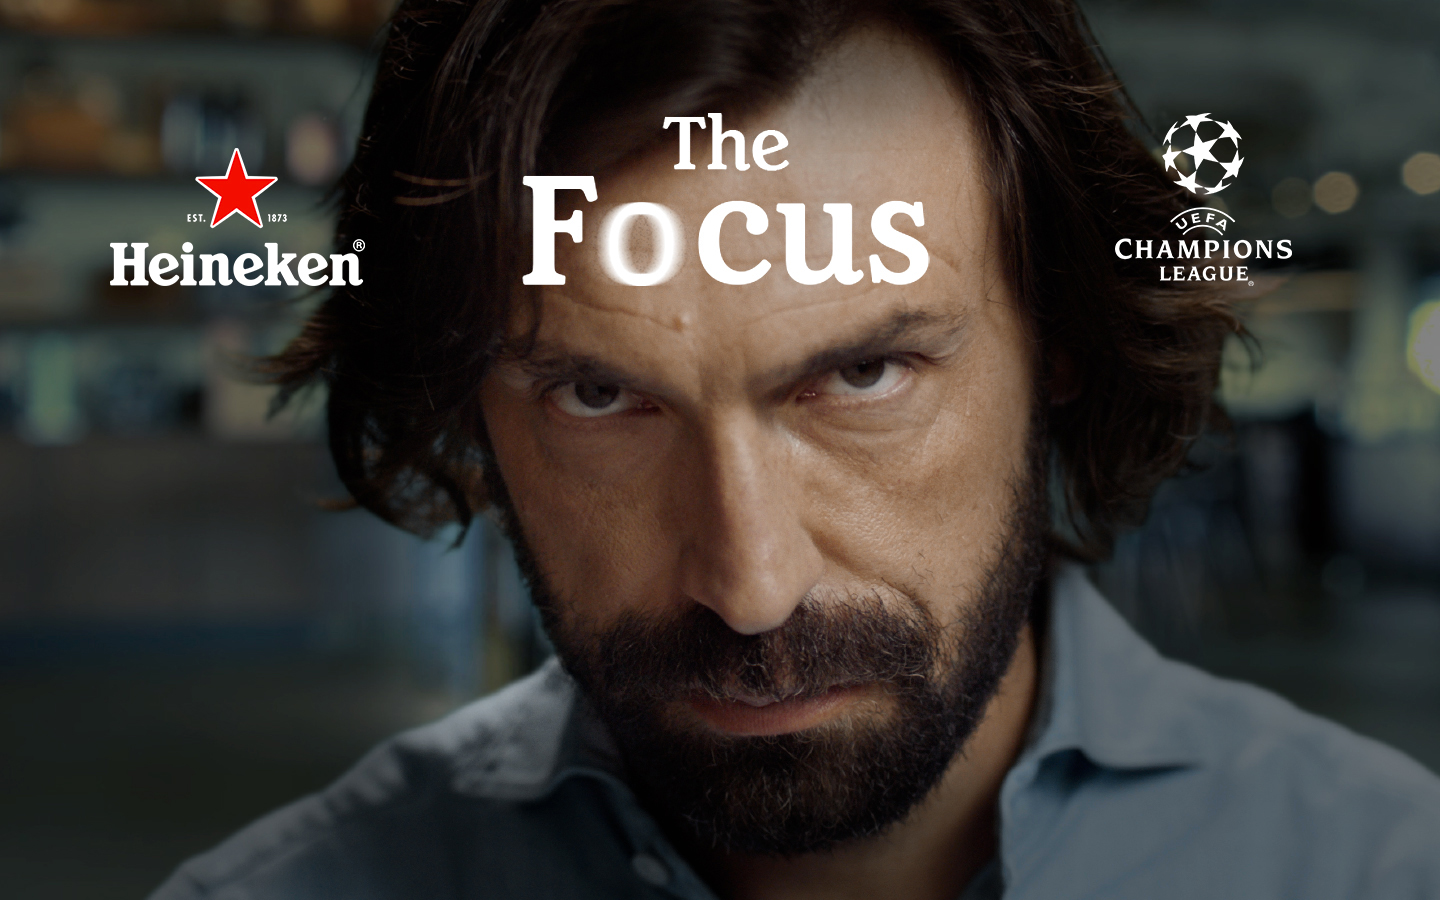 Heineken presents The Focus: a virtual stare down with Andrea Pirlo — the master of concentration